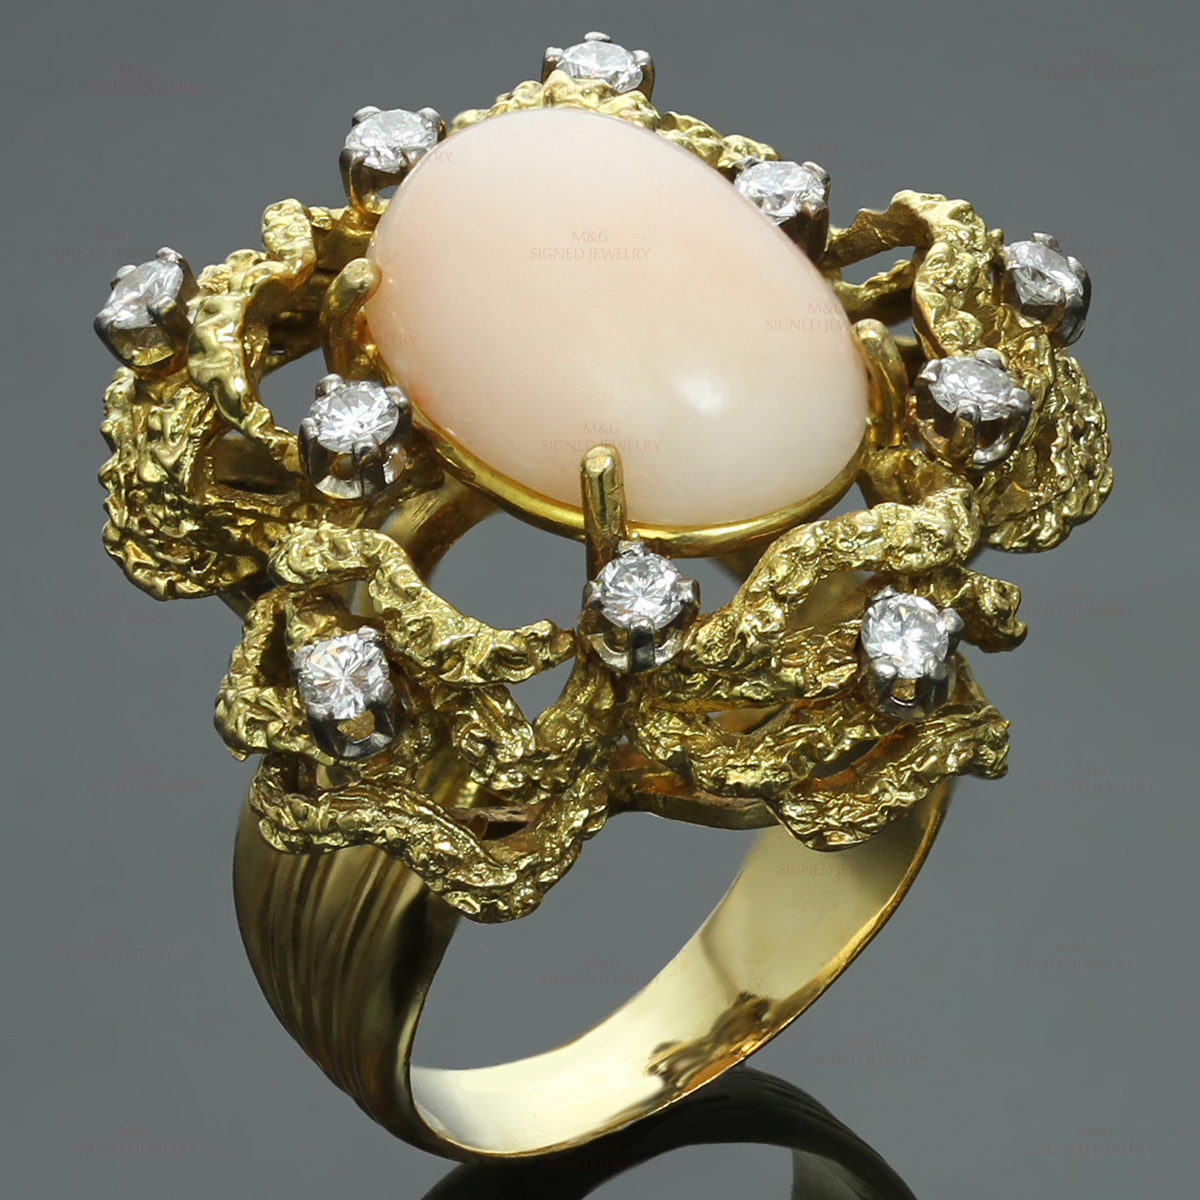 Hand-Made Diamond Angel Skin Coral 18k Yellow Gold Ring